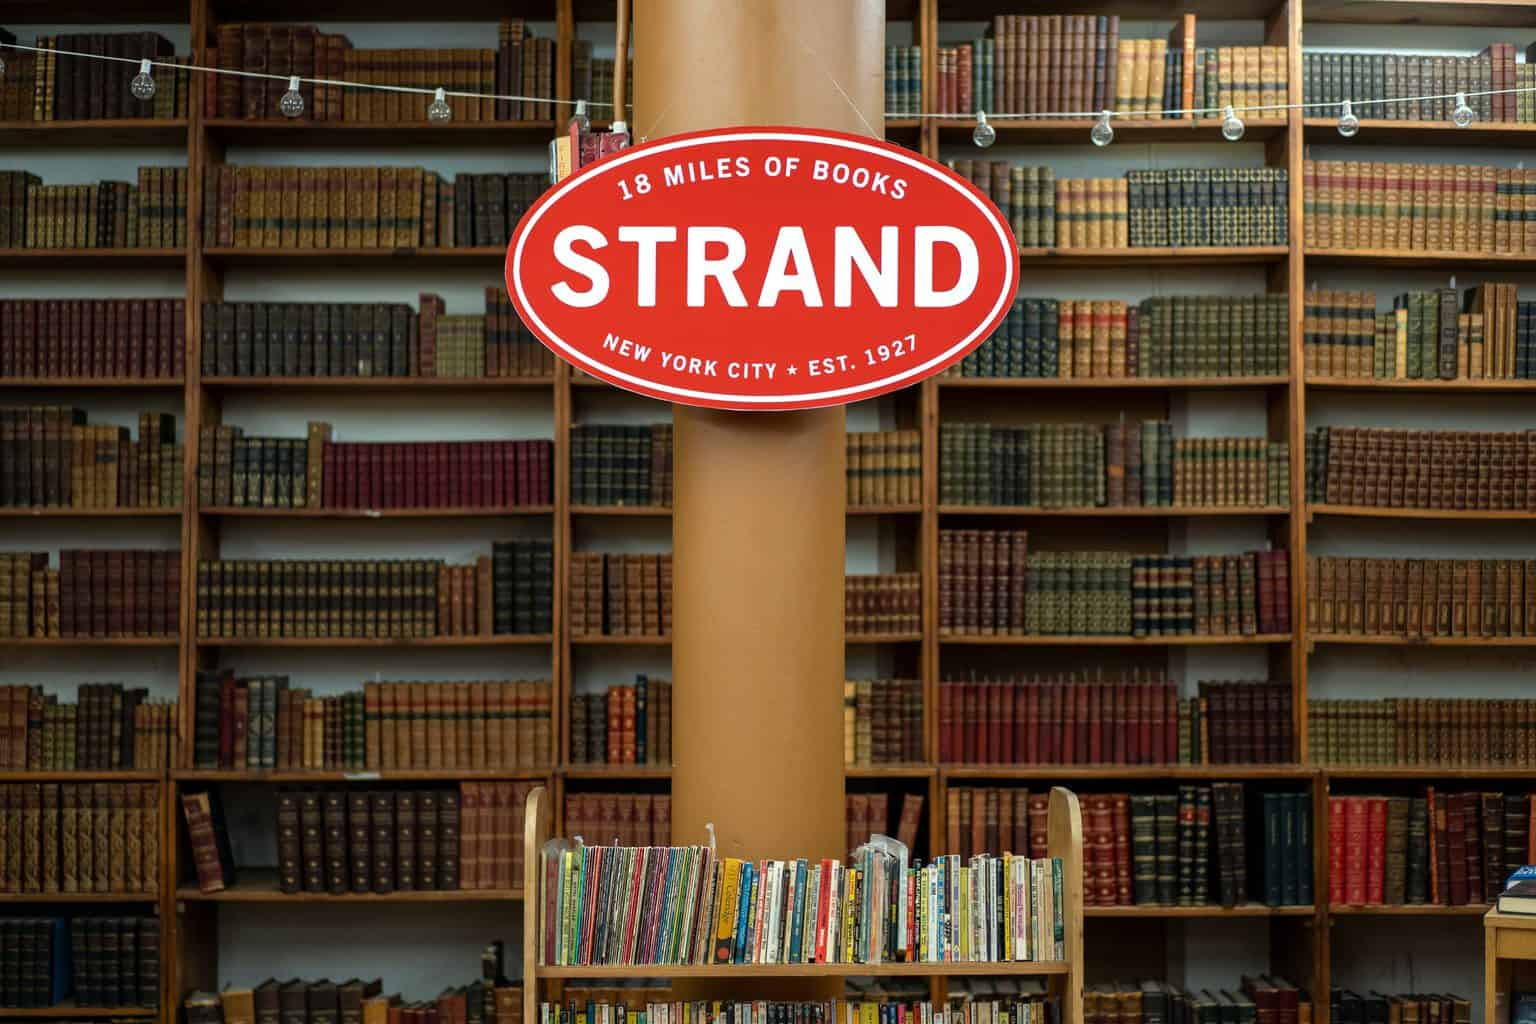 The miles of used books you'll find at Strand used bookstore in Lower Manhattan.